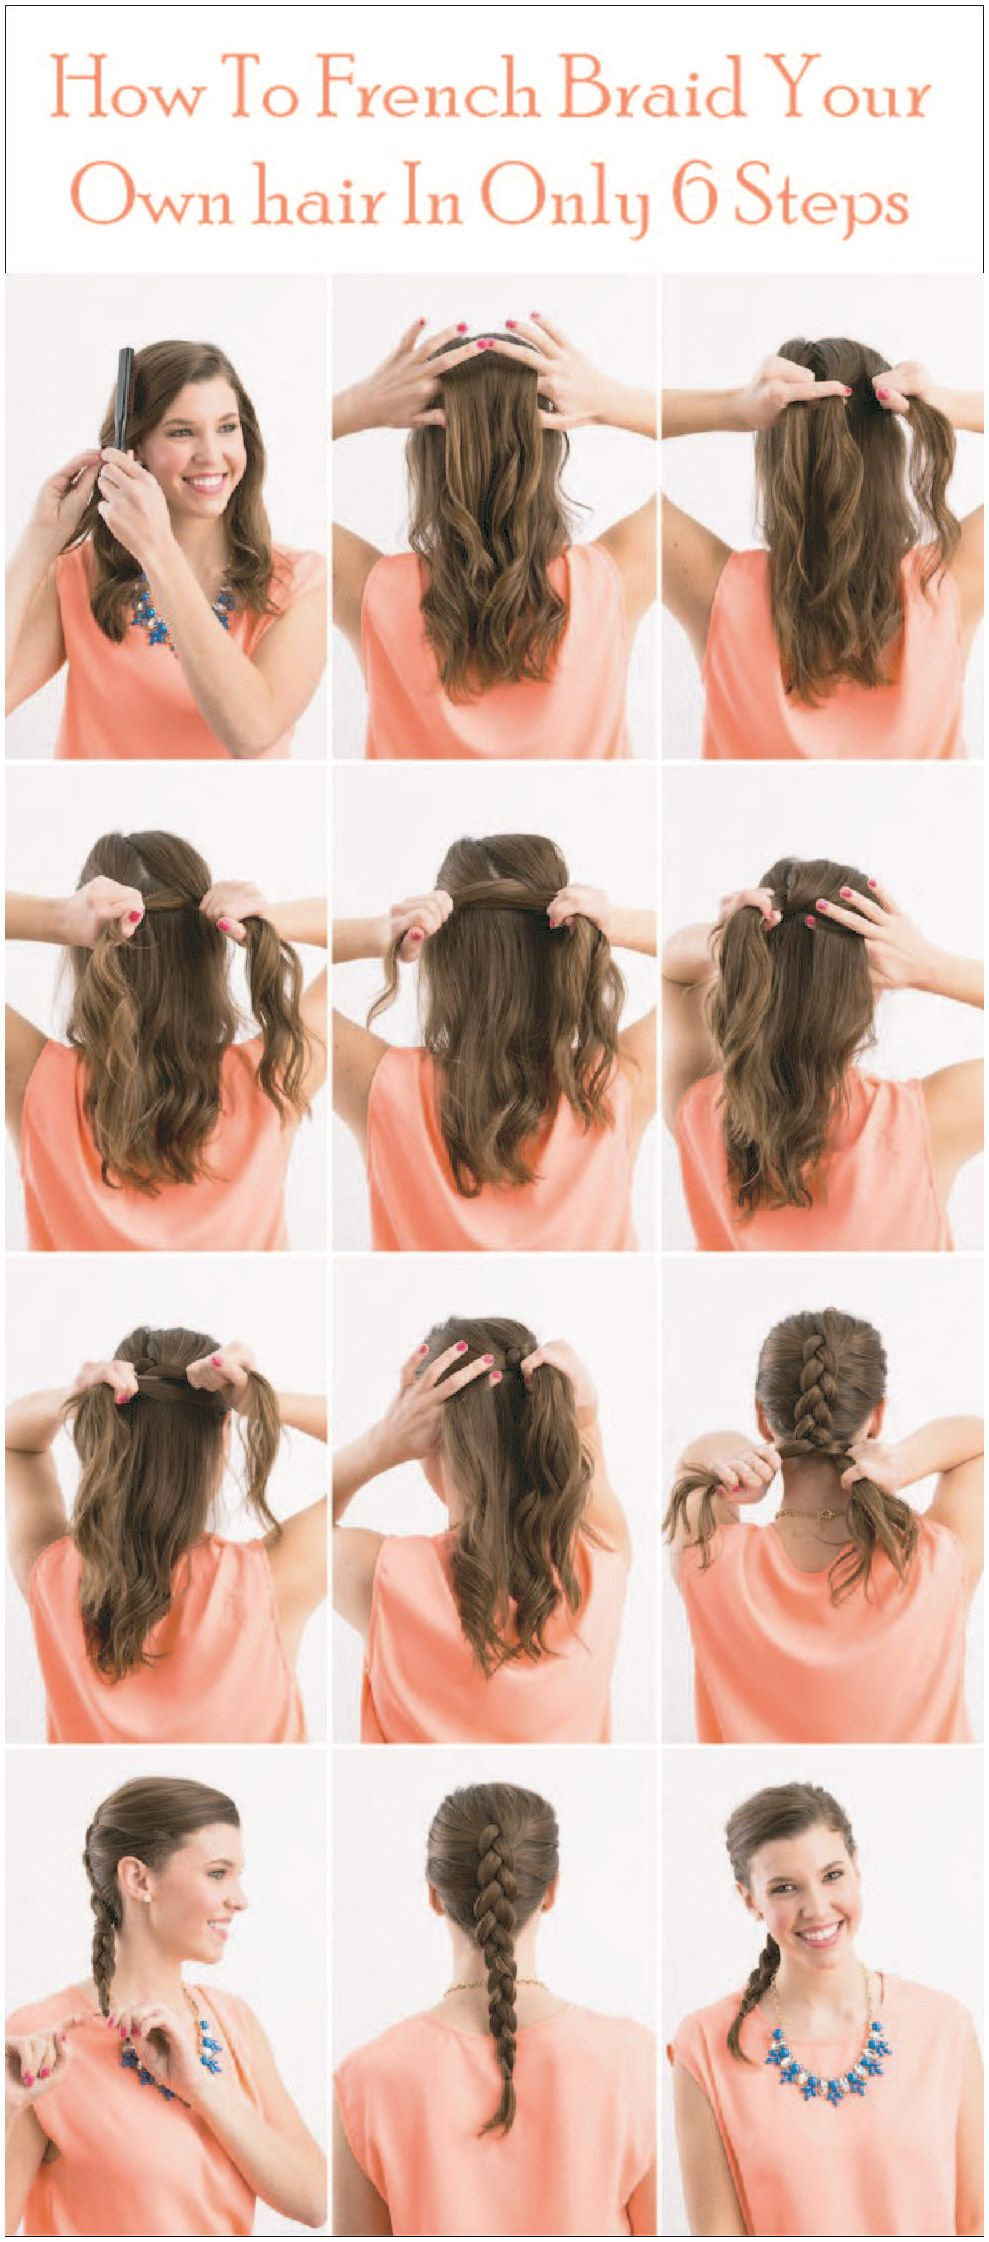 Fancy French Braids Want To Know How To French Braid Your Hair French Braids Are Very Easy To Do On Some Hair Styles Braids For Short Hair Braided Hairstyles